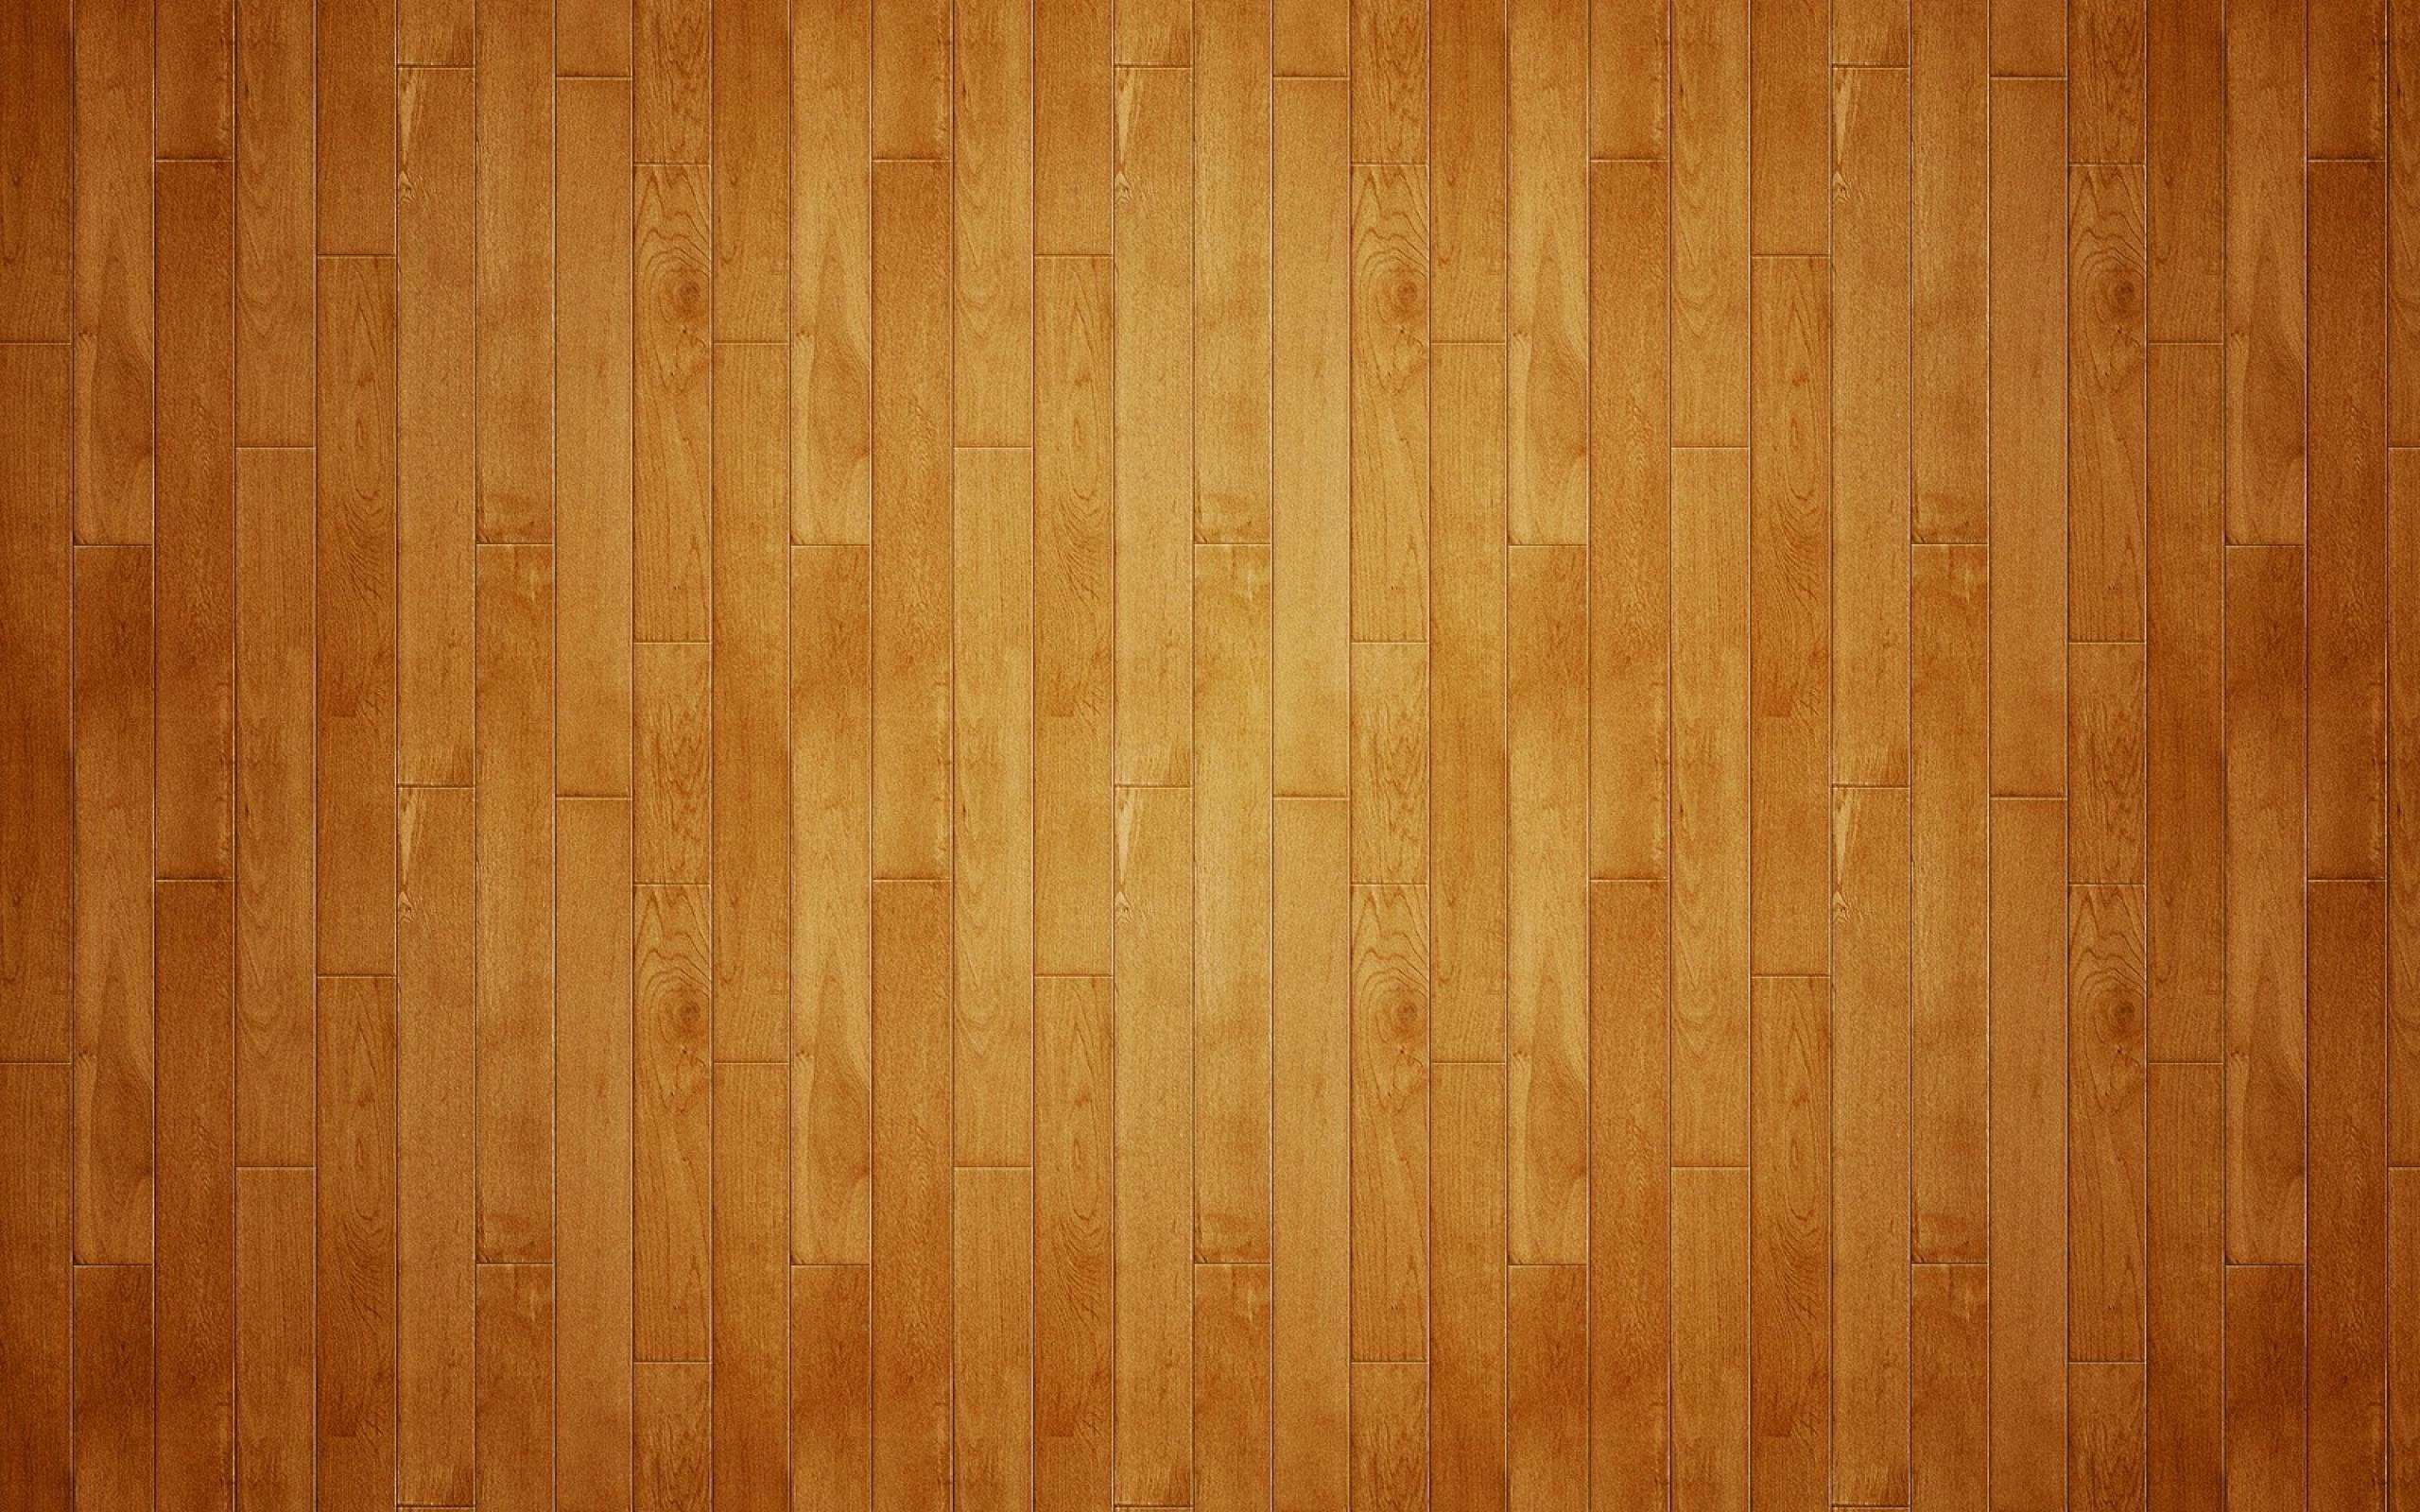 2560x1600 Backgrounds Wood (60 Wallpapers)